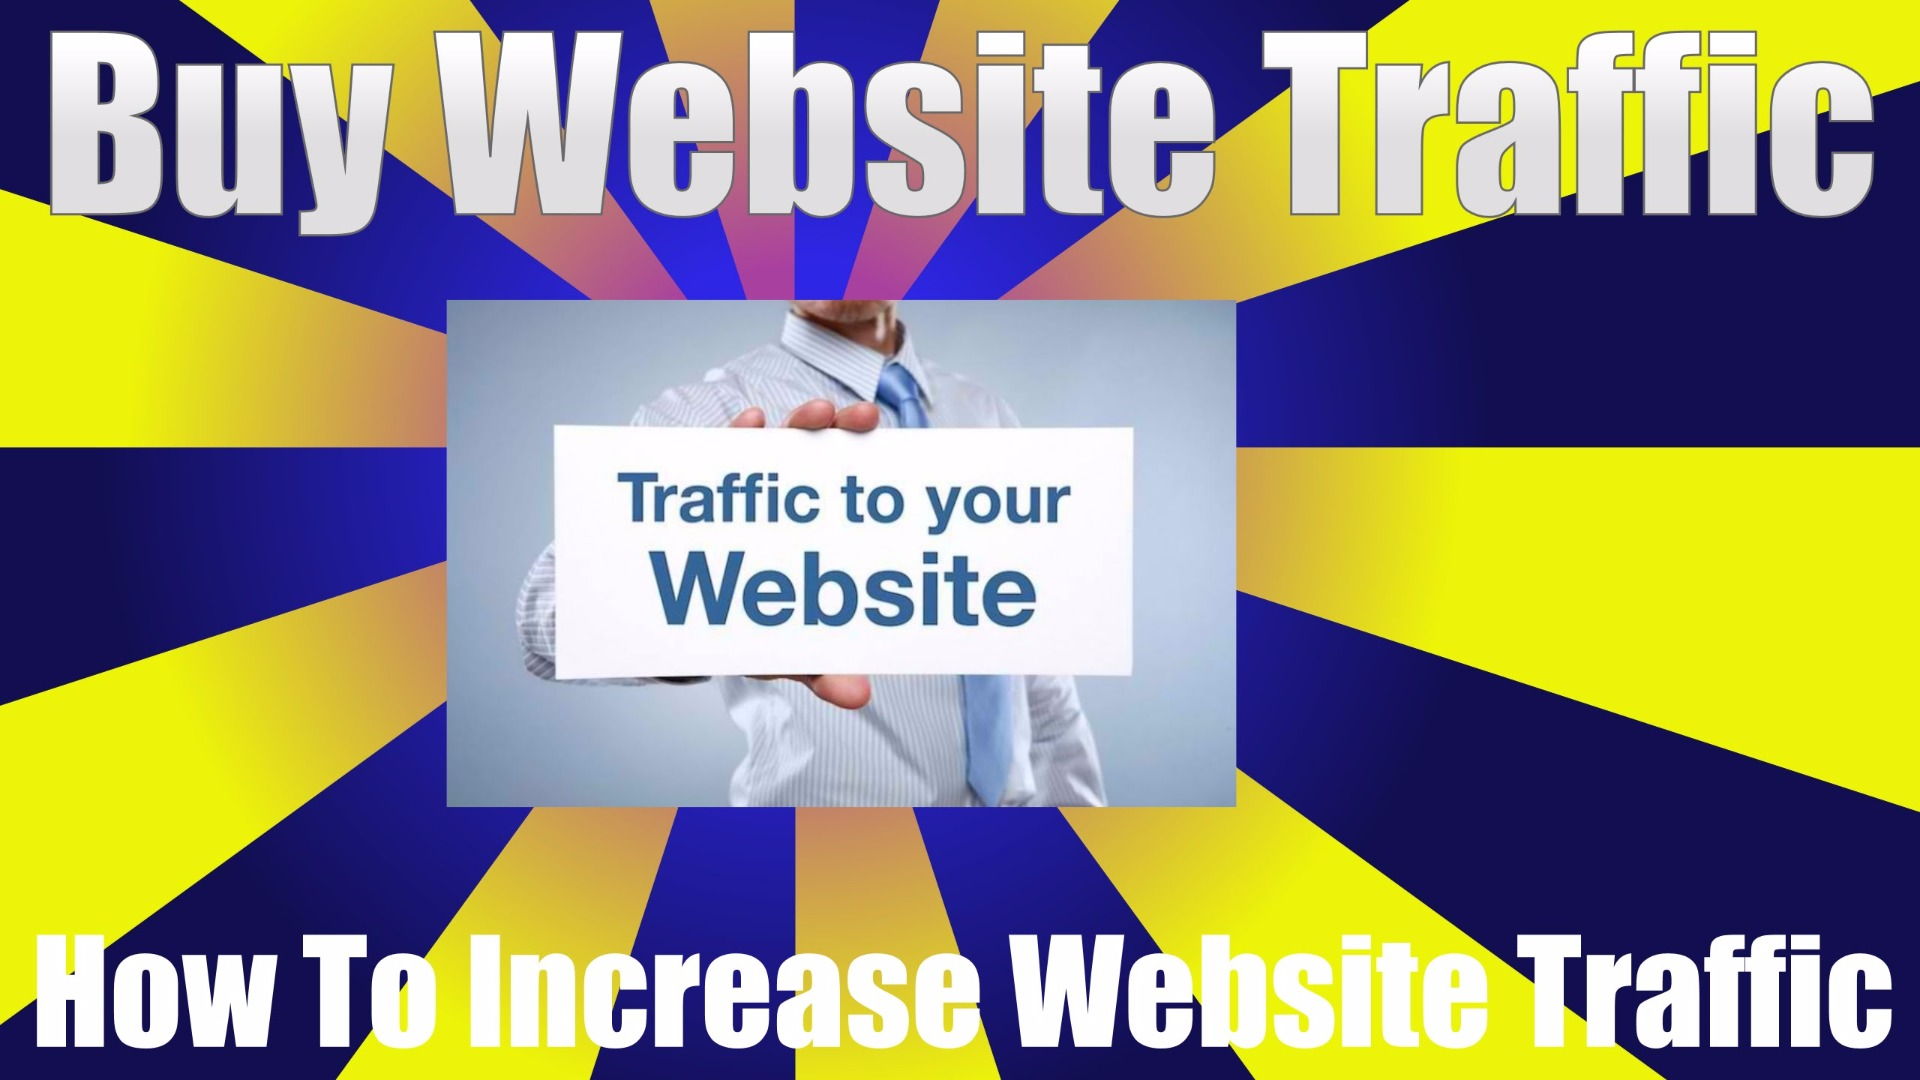 I will generate 100,000 Keyword Targeted, Organic Website Traffic